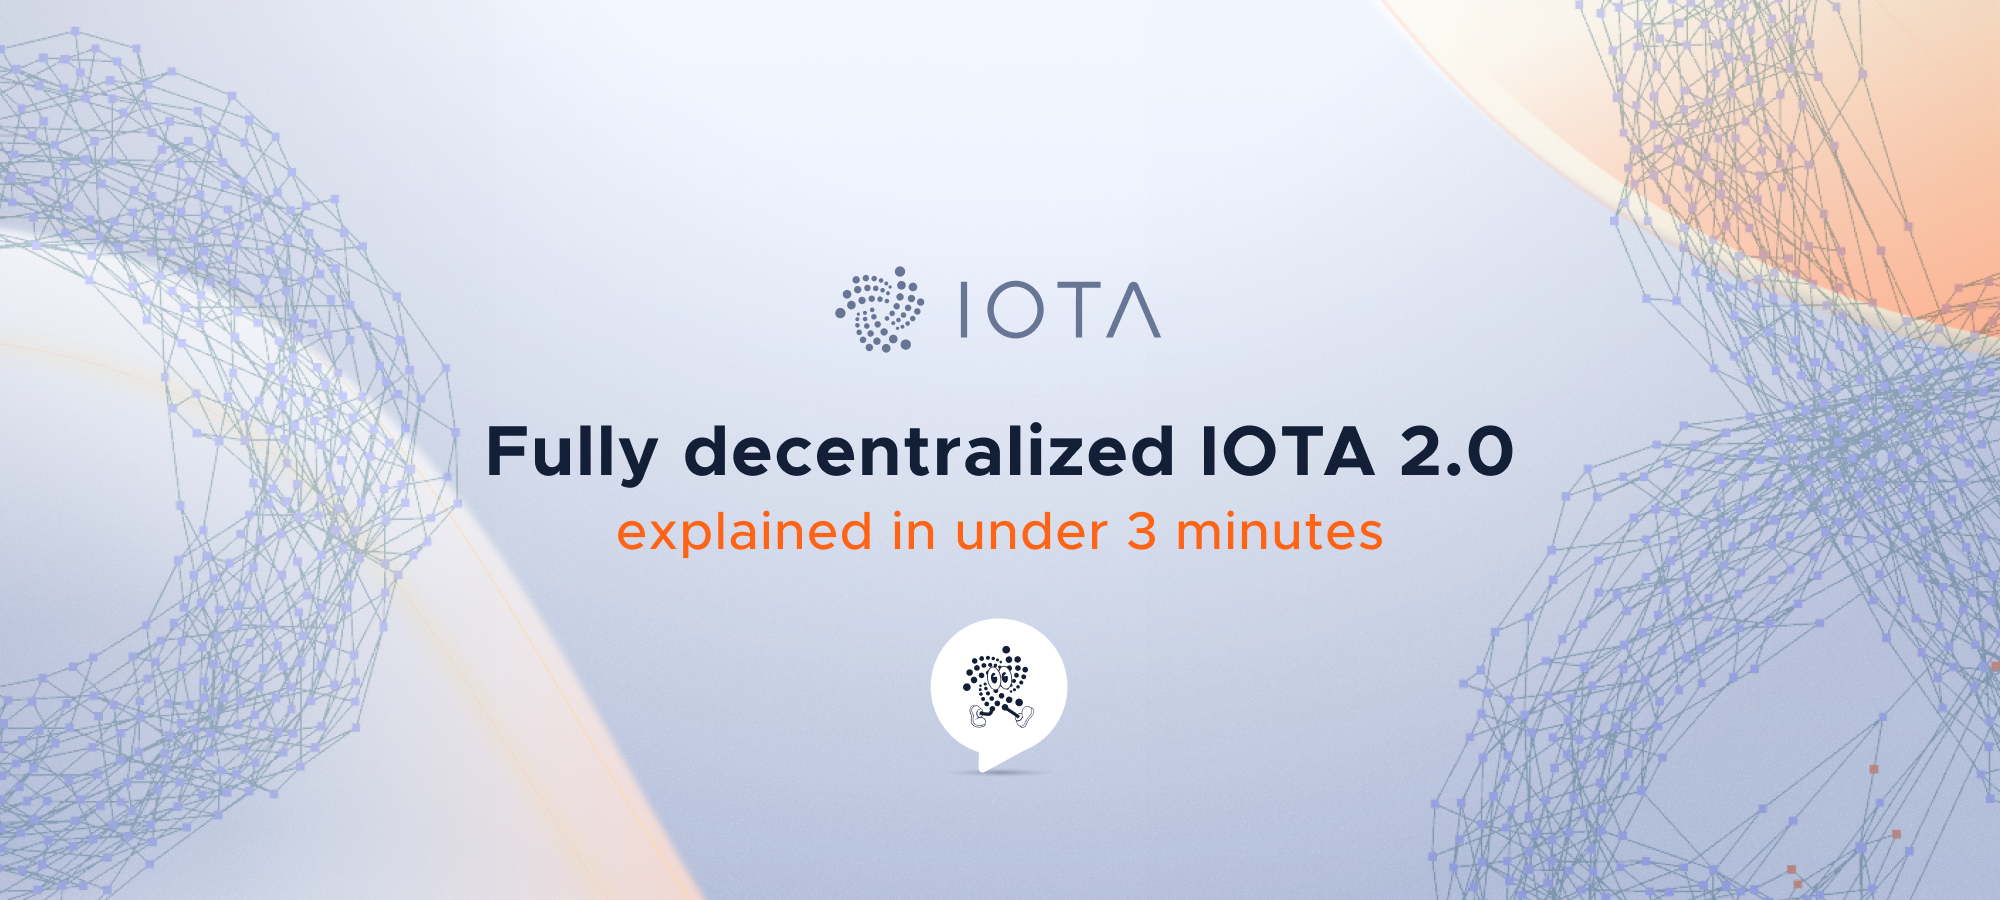 Fully decentralized IOTA 2.0 explained in under 3 minutes